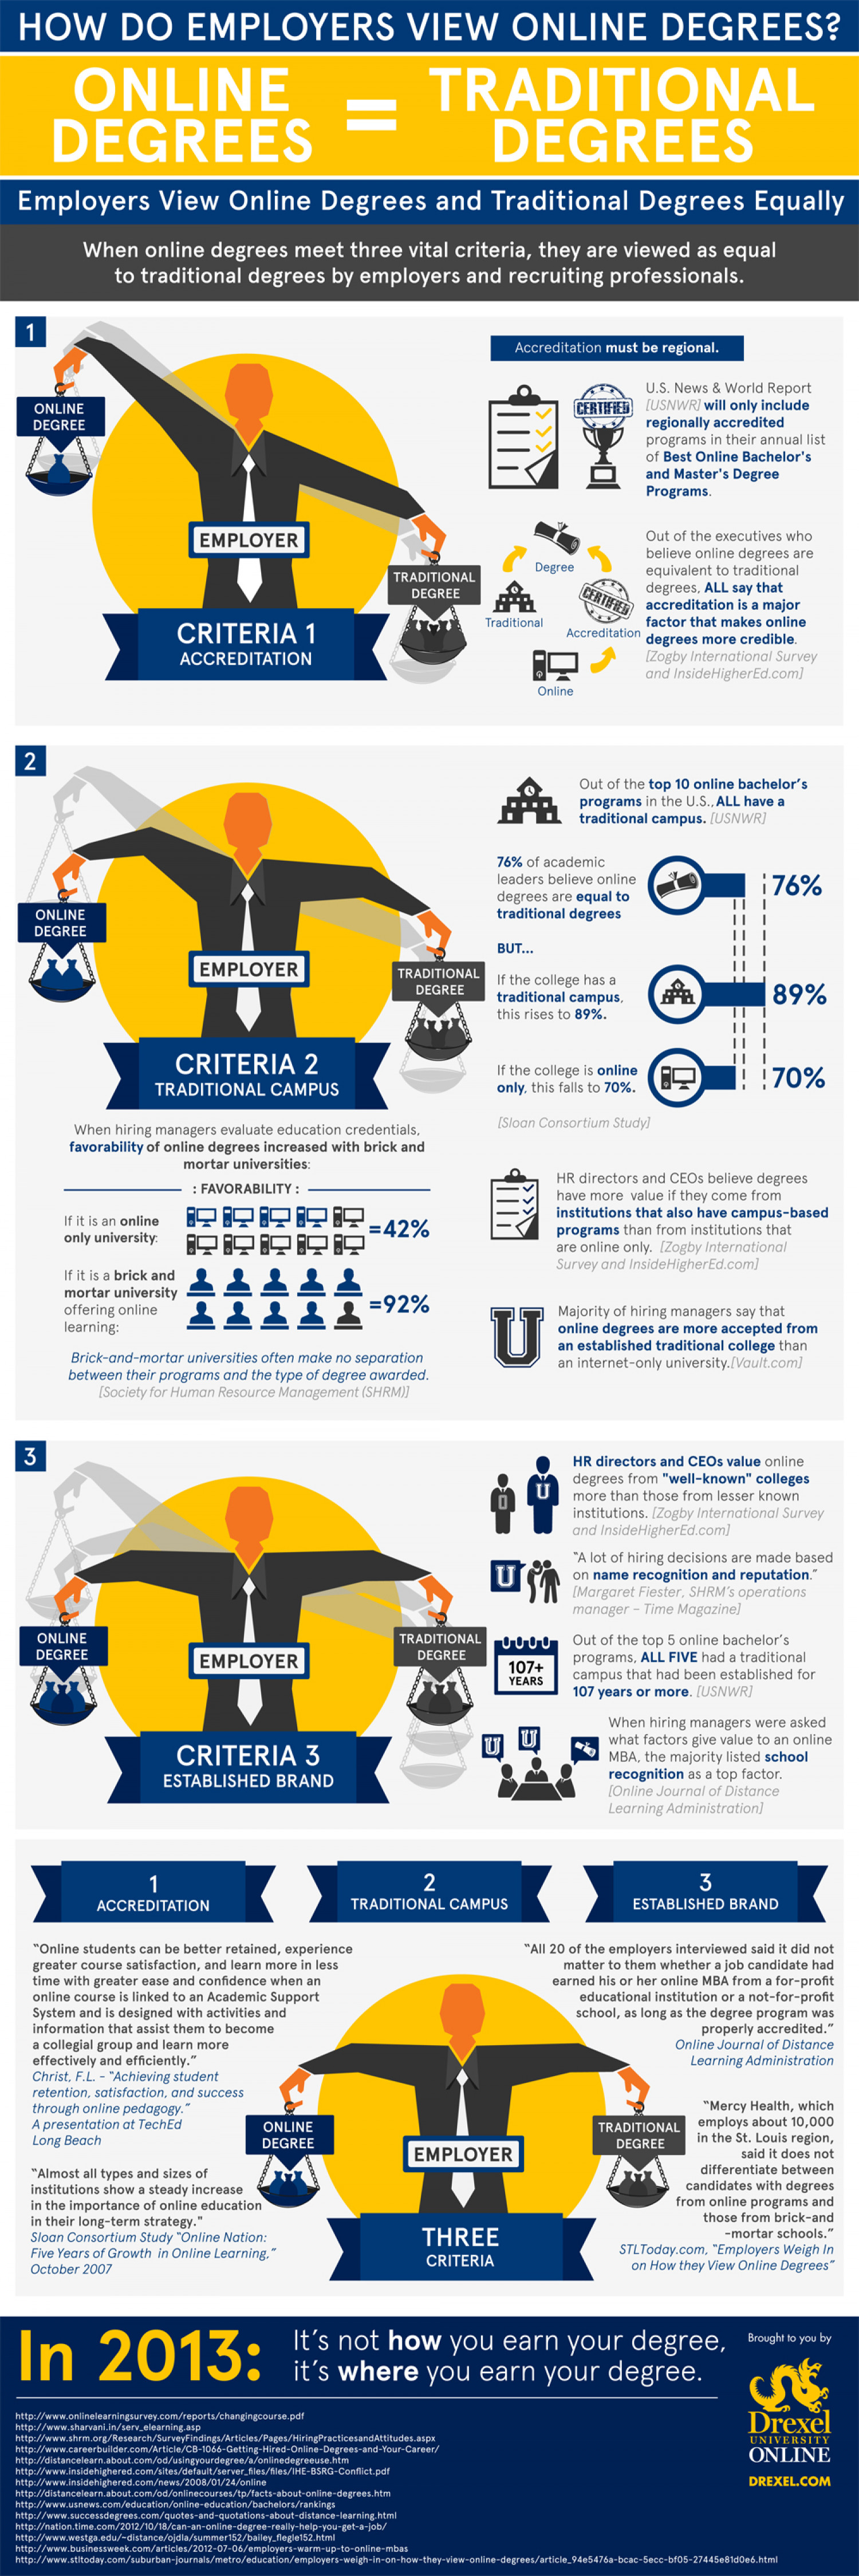 How Do Employers View Online Degrees? Infographic